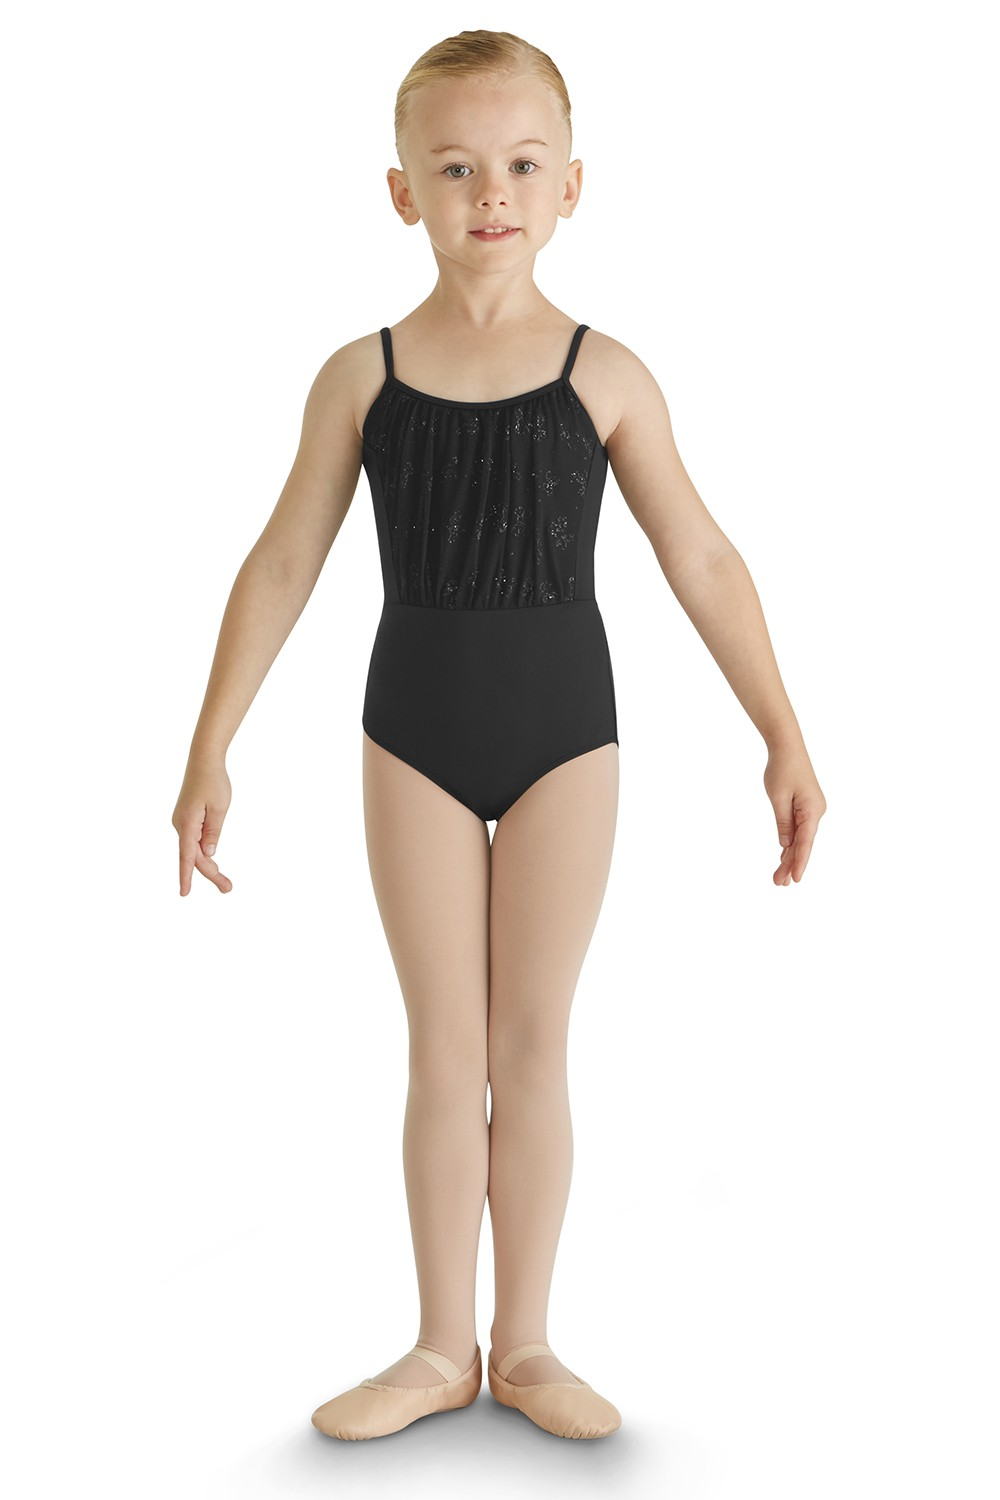 Cardea Children's Dance Leotards